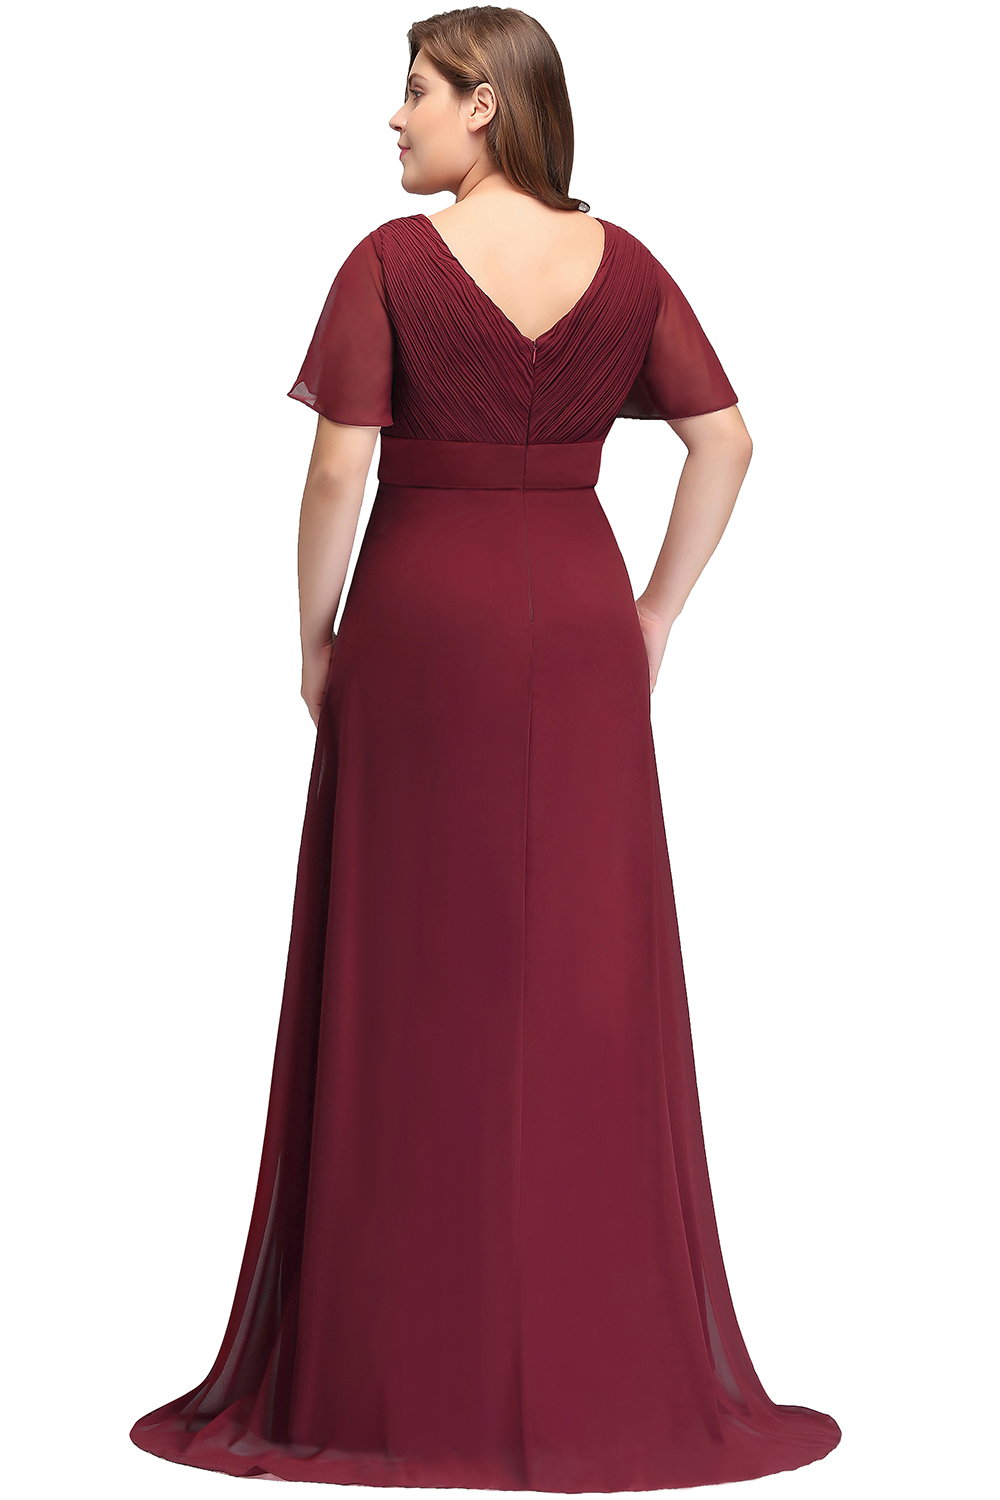 2019 Burgundy Navy Blue Chiffon Mermaid Long Bridesmaid Dresses Plus Size  Short Sleeve Wedding Party Guest Dress